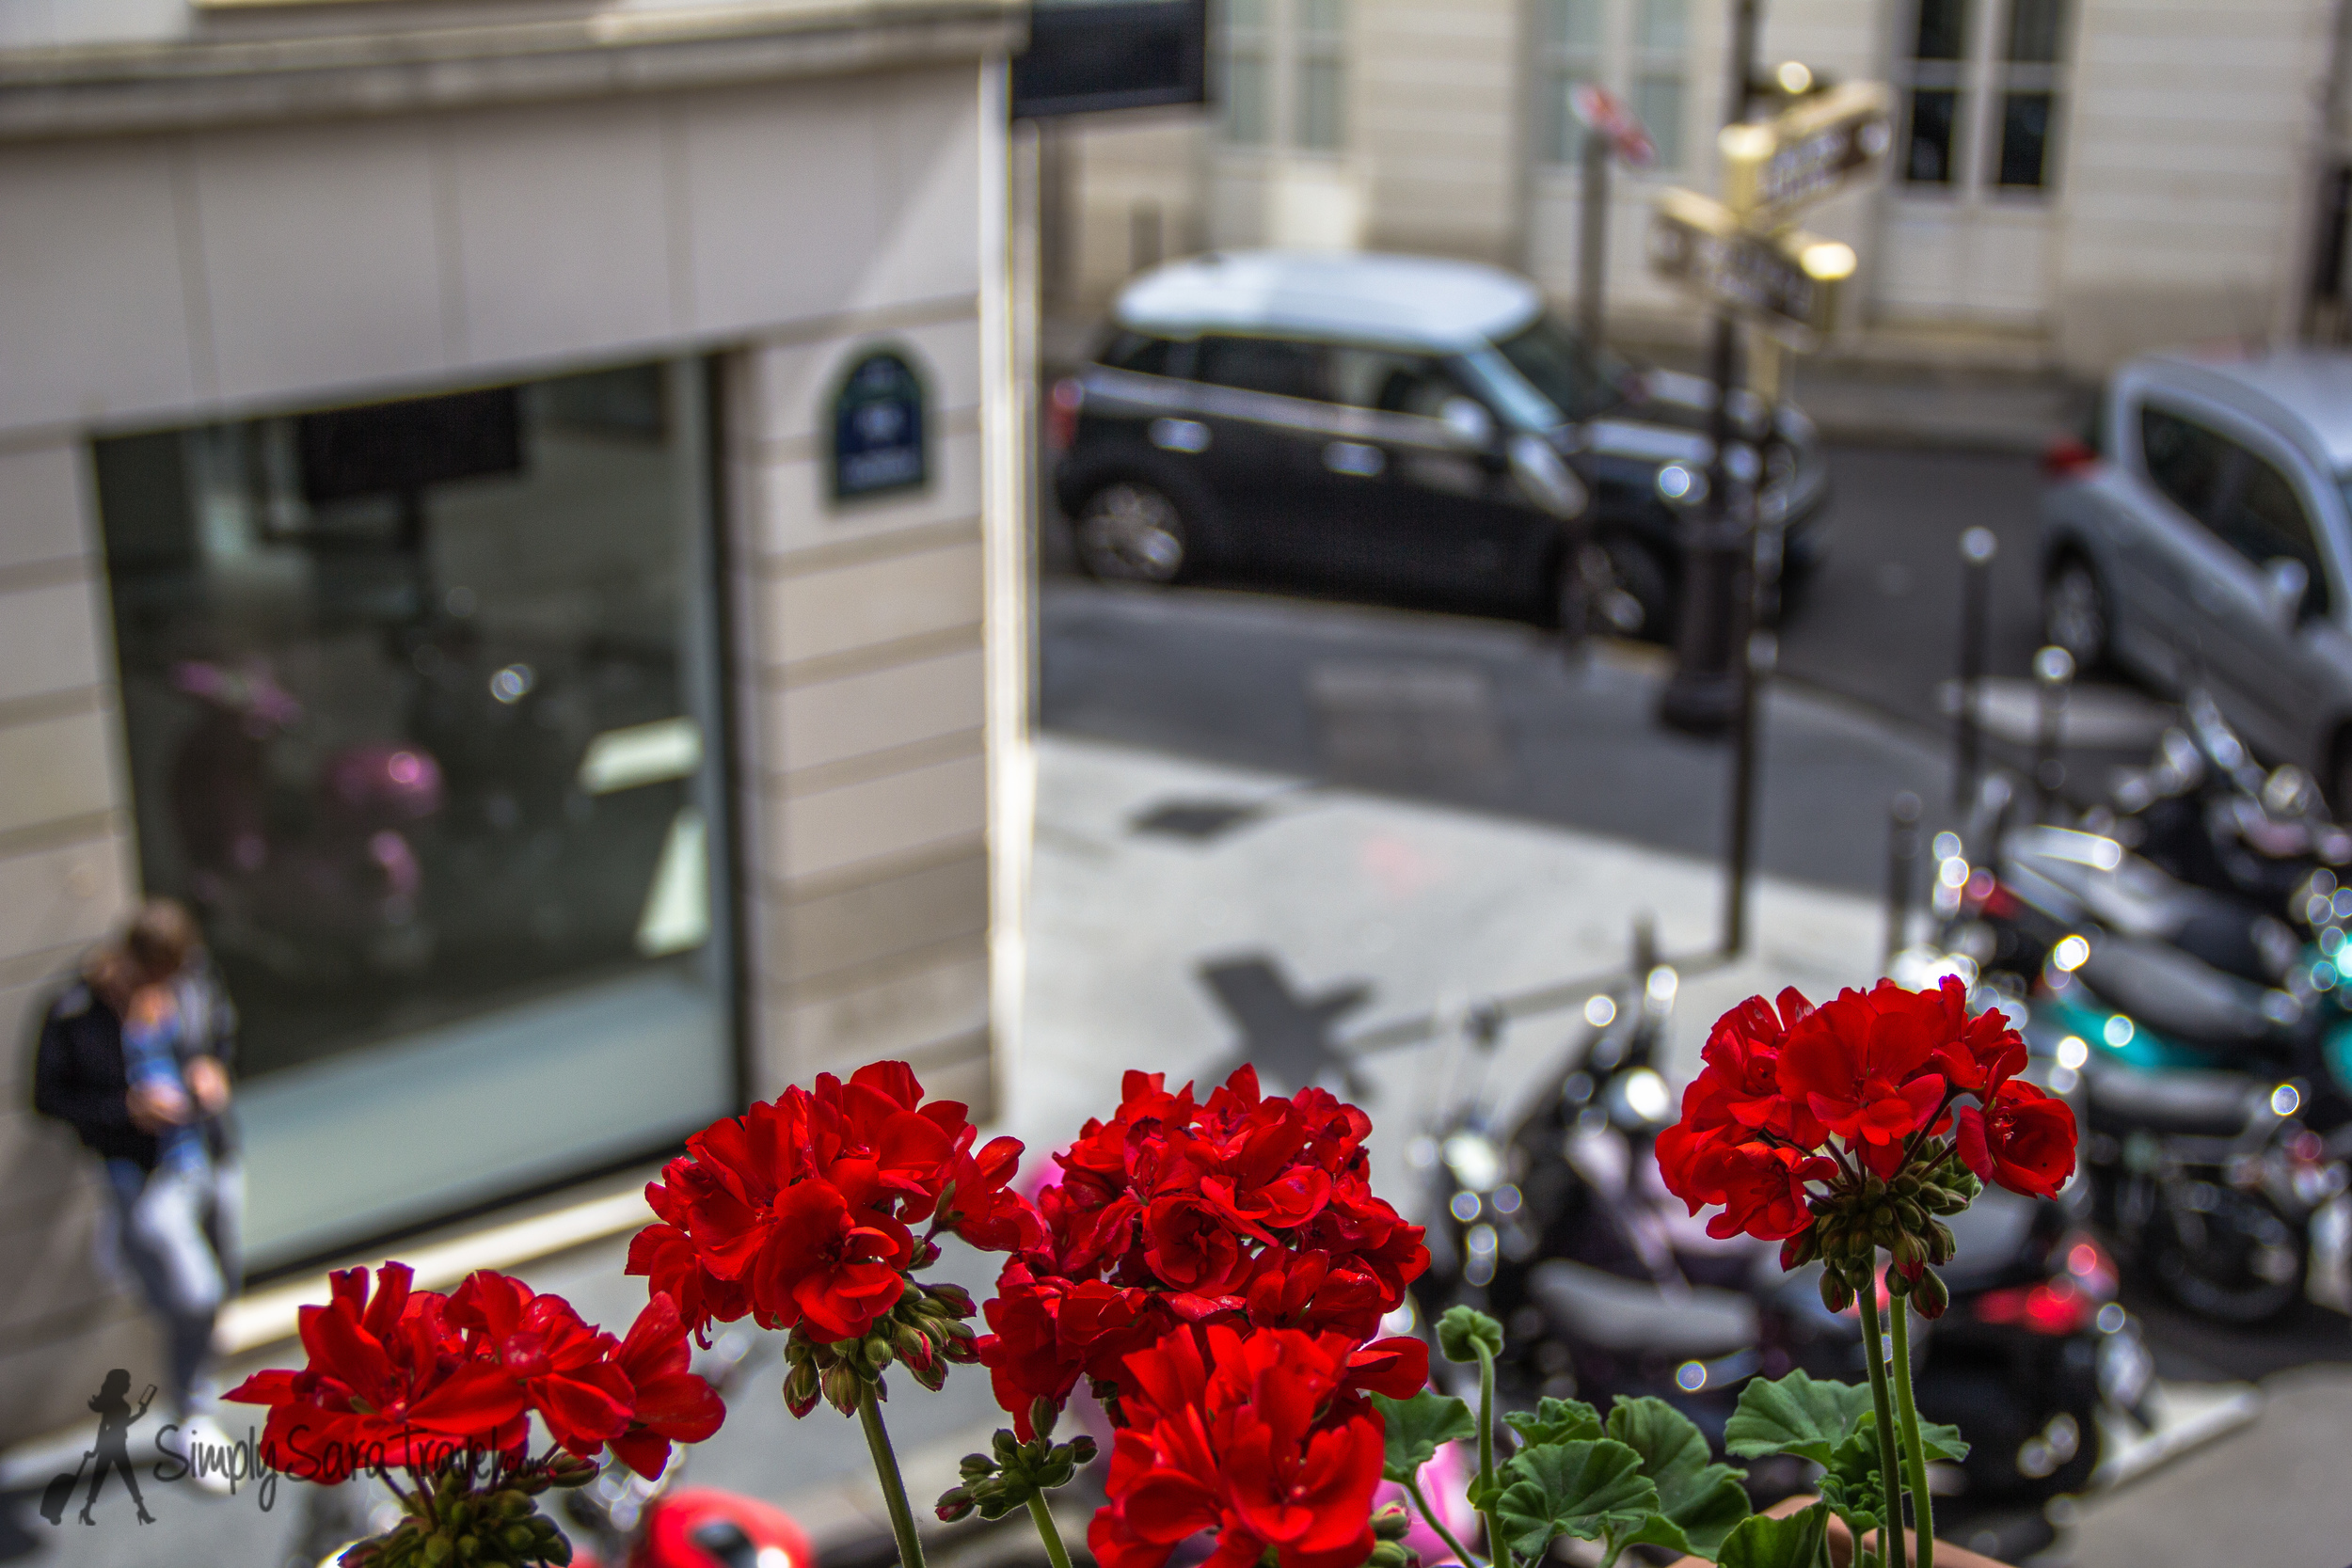 Apartment redflower box with a view of the Marais in Paris, France